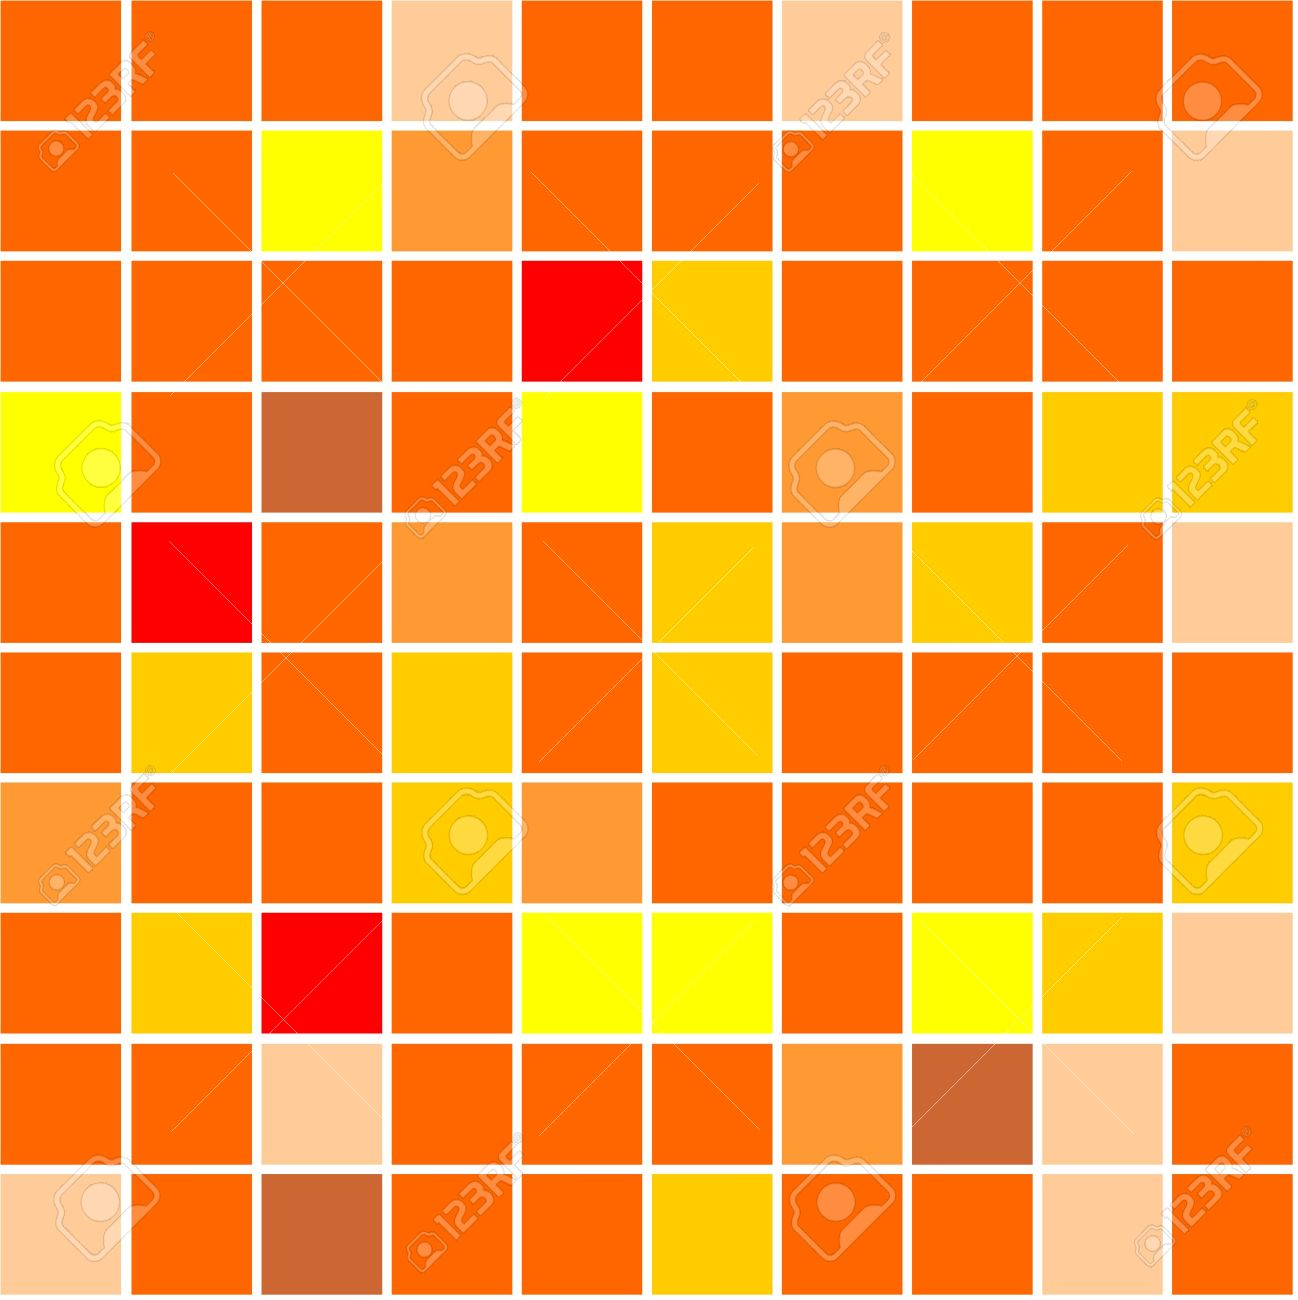 3944170-Seamless-tiles-background-different-shades-of-orange-colour-Stock-Photo